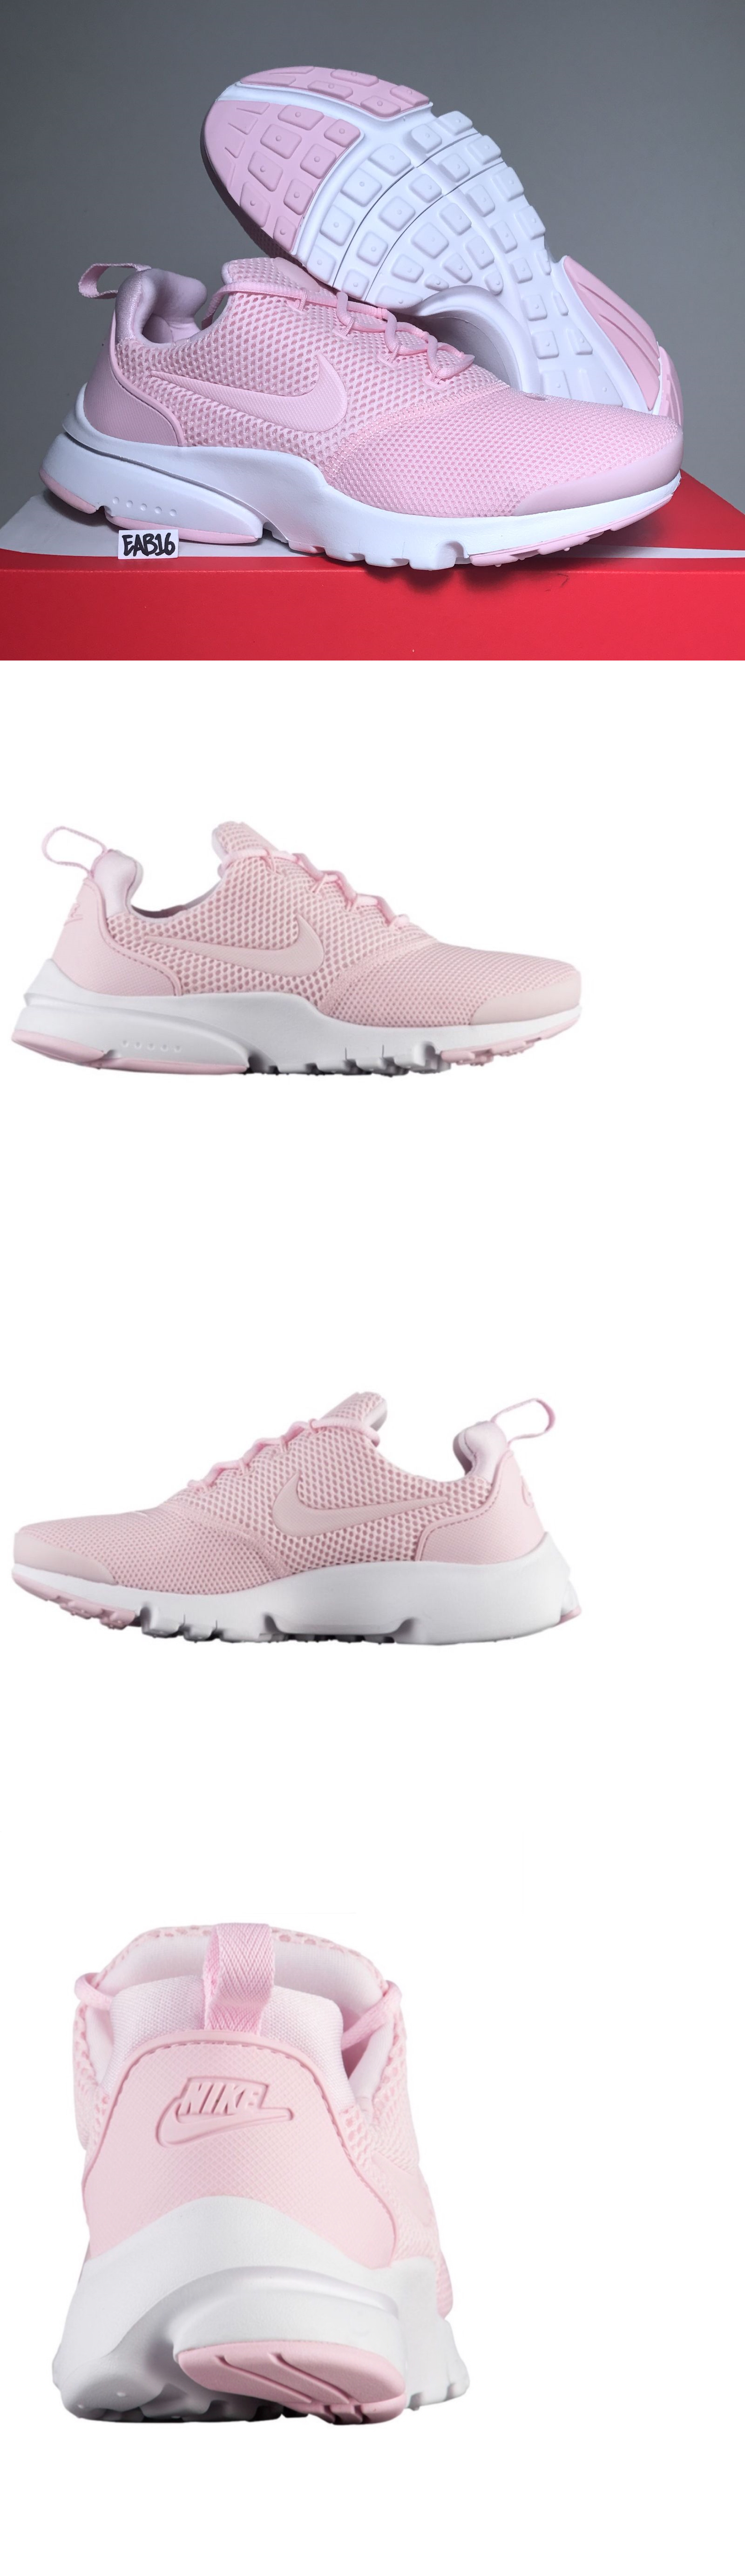 innovative design 71a18 e1ebd Girls Shoes 57974: Nike Presto Fly Racer Pink And White Boys ...